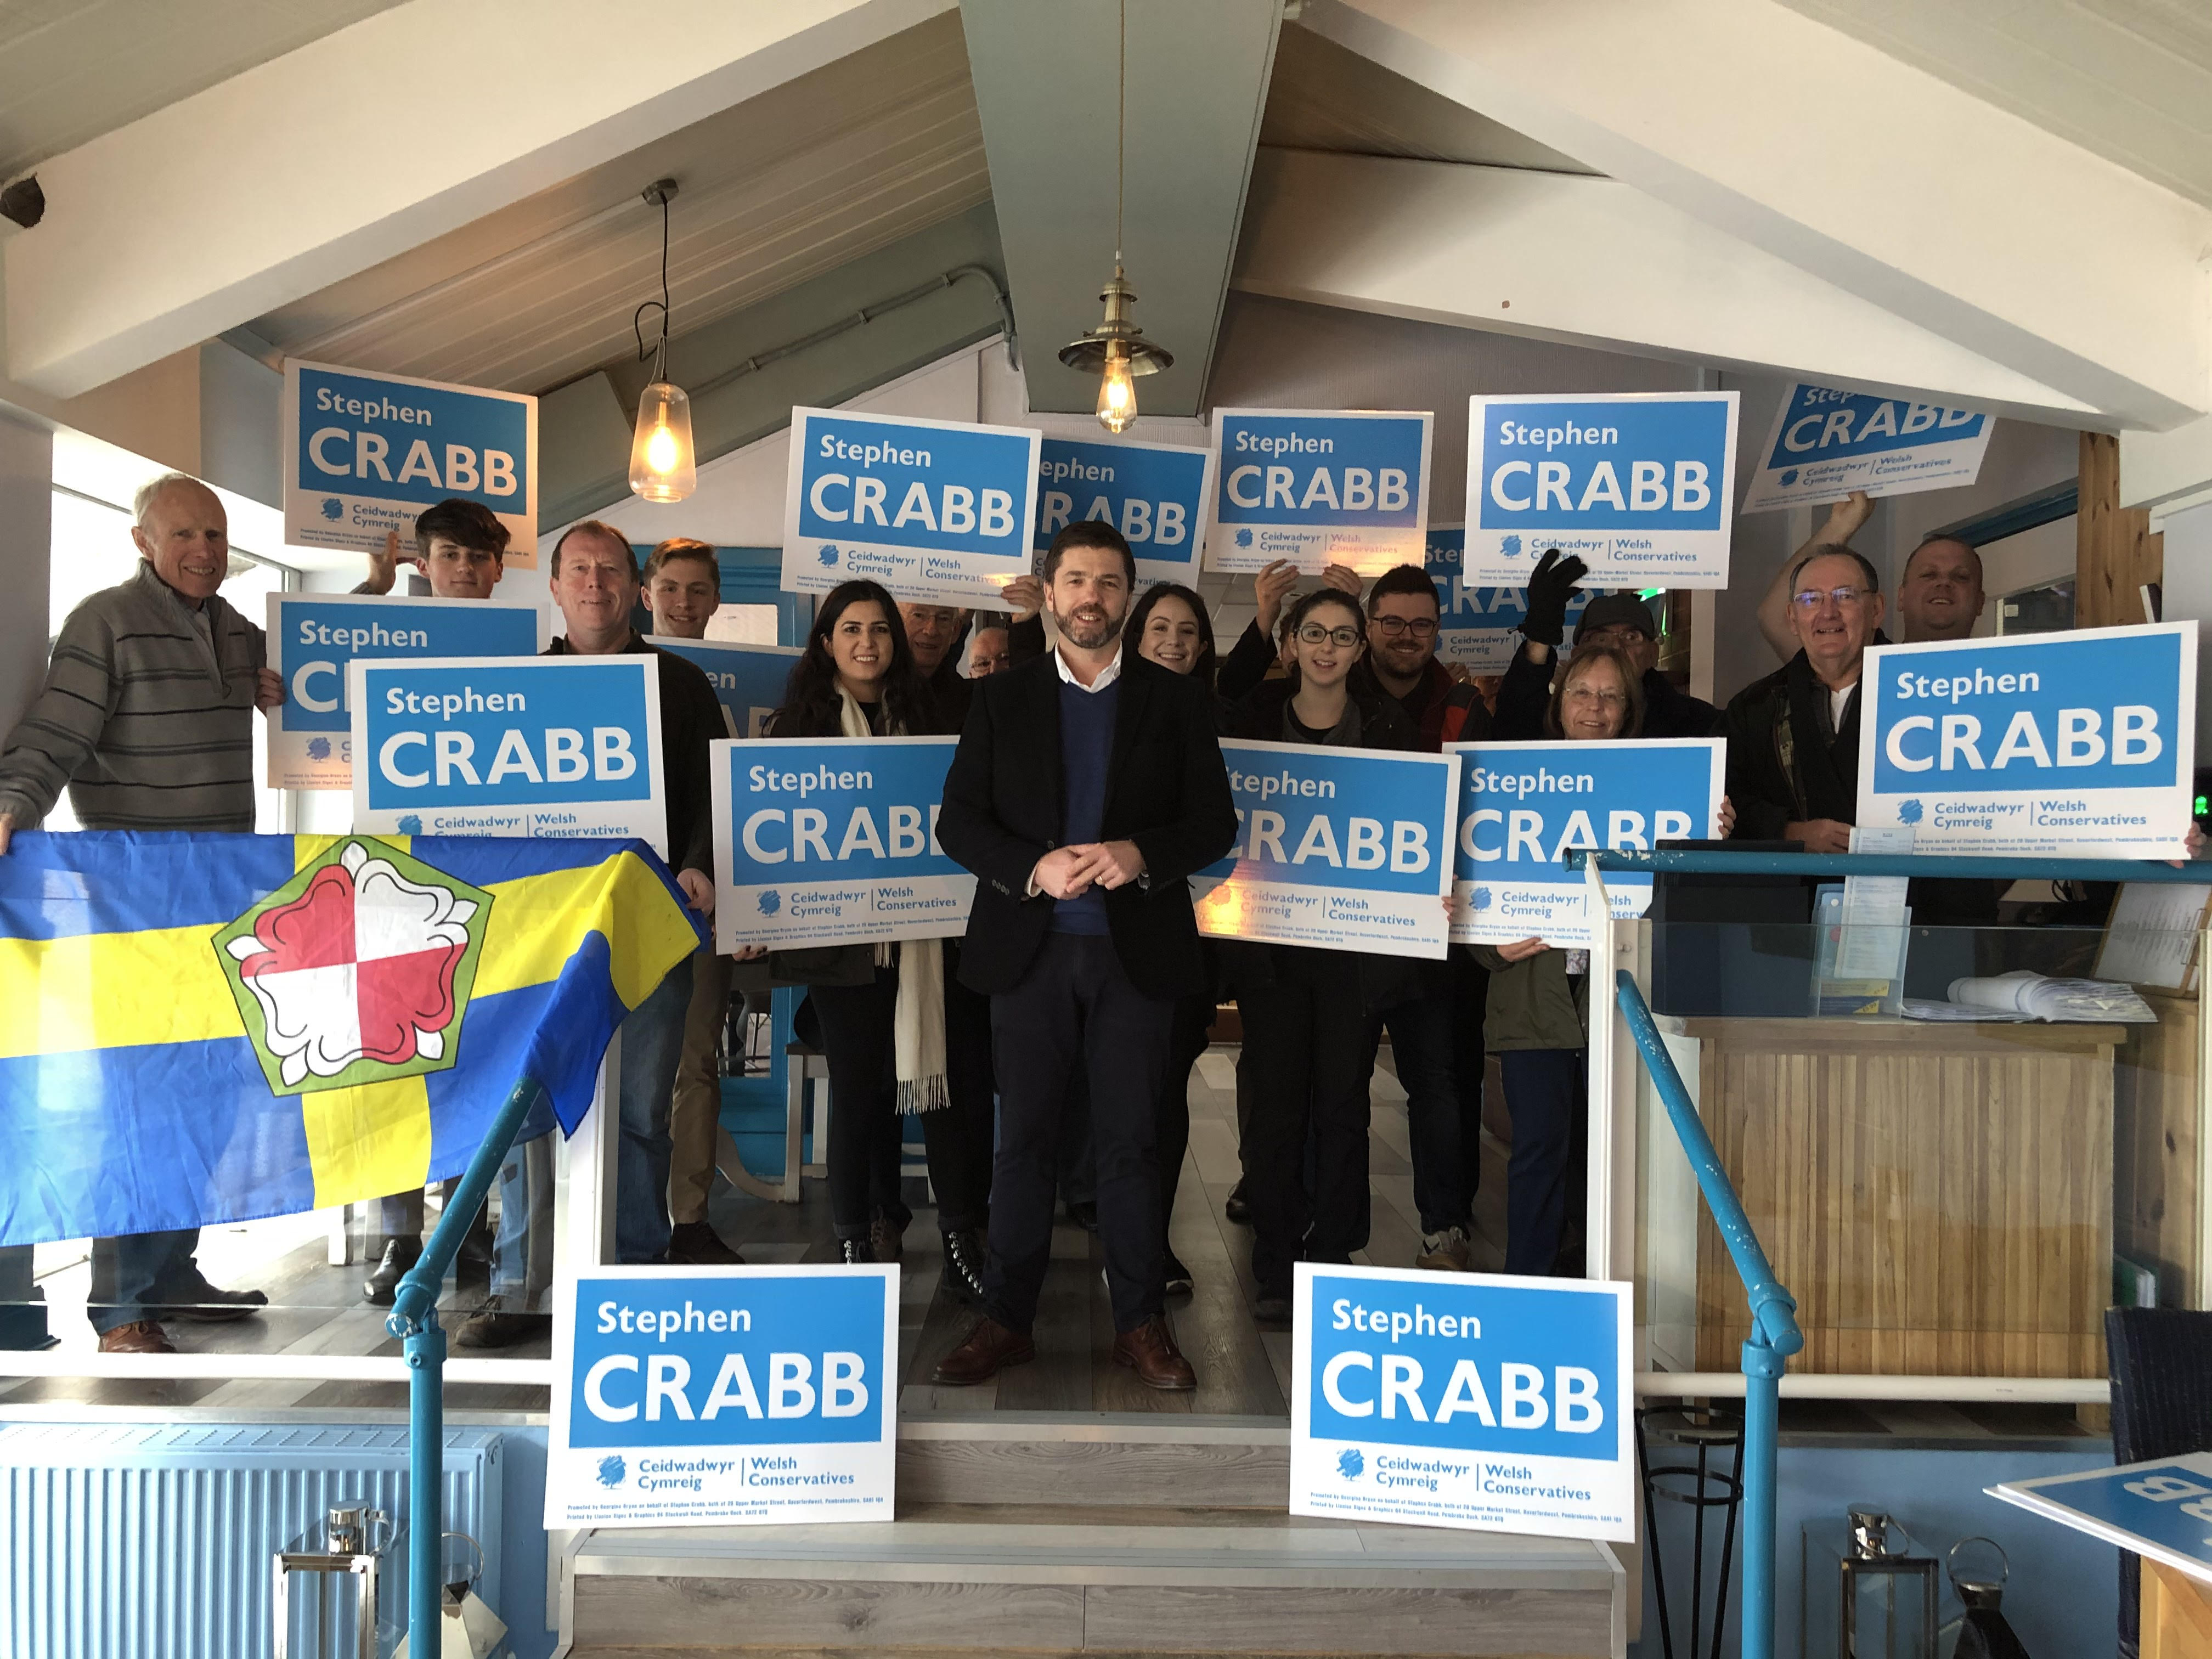 """We have a duty to win"" says Crabb at campaign launch – The Pembrokeshire Herald"